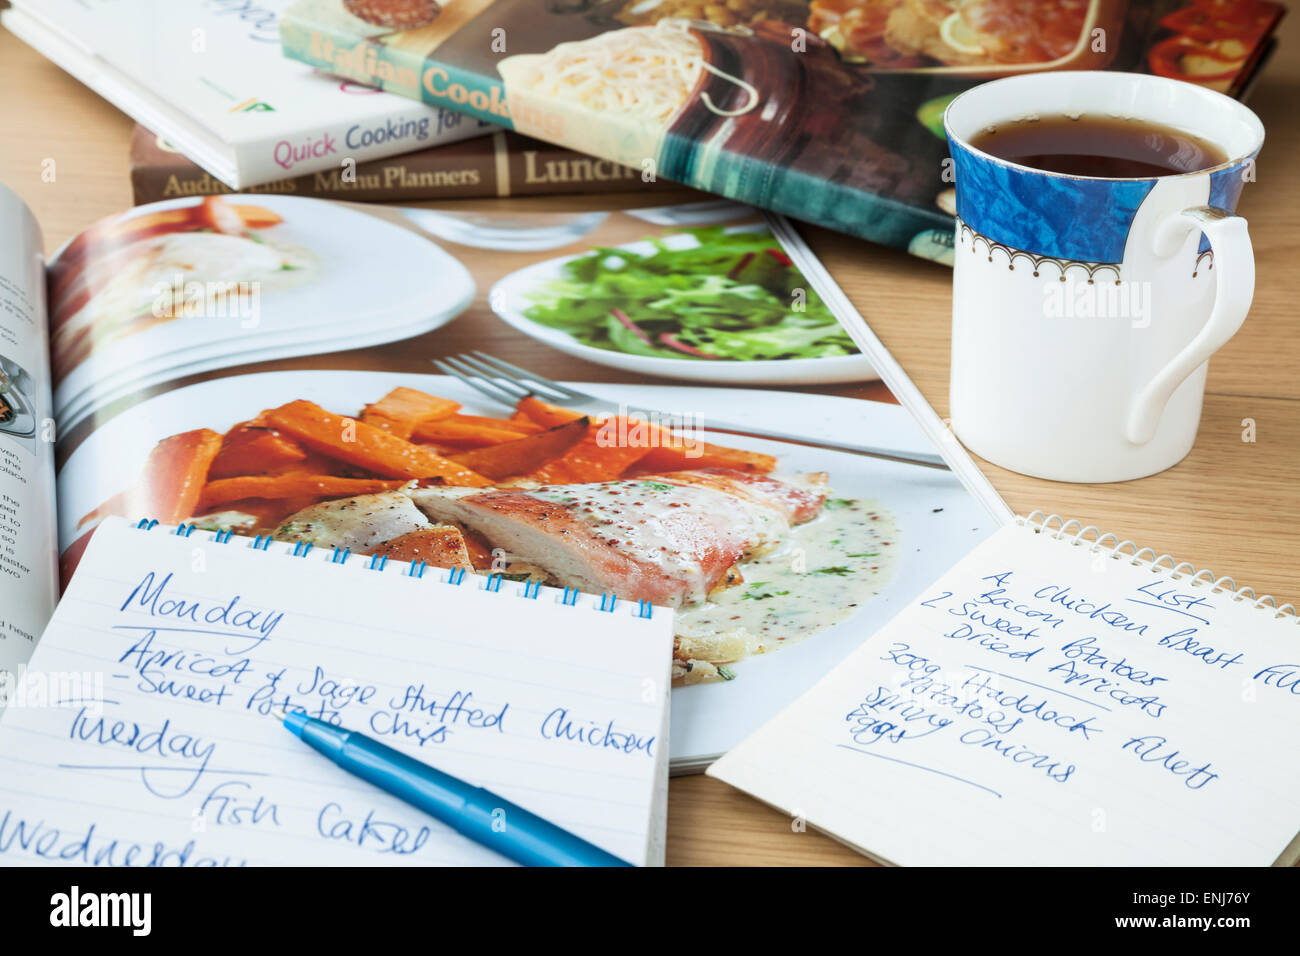 A notepad with weekly meal plan and shopping list on a table top beside an open cookery book and a mug of coffee. - Stock Image